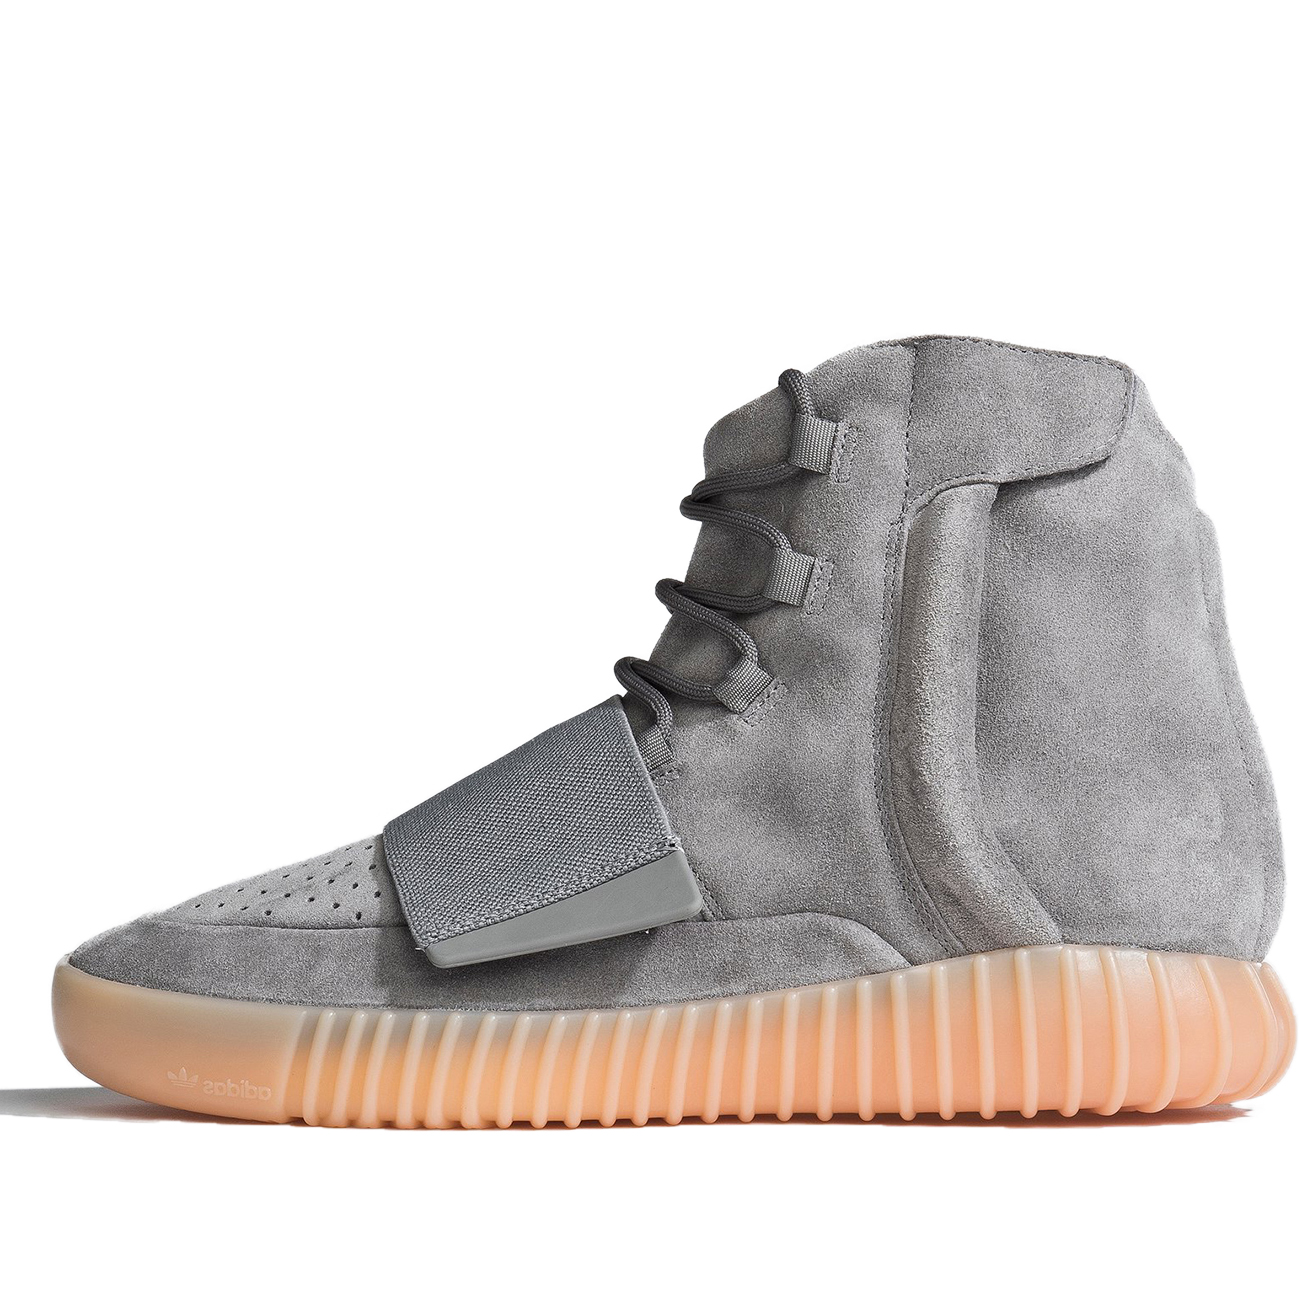 1436097f1 Adidas Originals Yeezy Boost 750 Grey Gum Kanye West